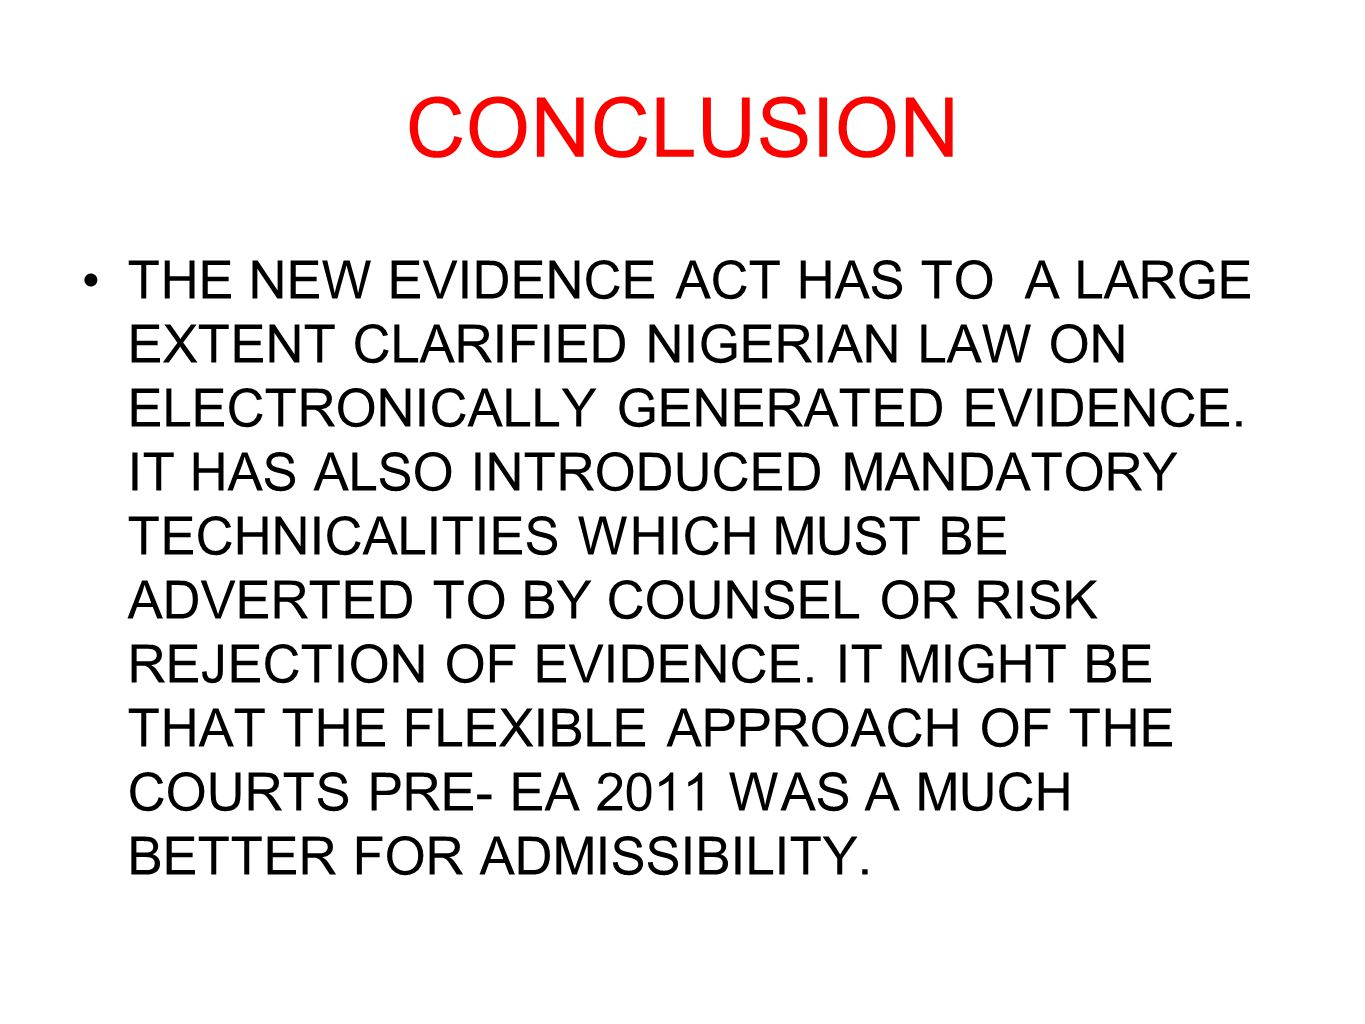 CONCLUSION THE NEW EVIDENCE ACT HAS TO A LARGE EXTENT CLARIFIED NIGERIAN LAW ON ELECTRONICALLY GENERATED EVIDENCE. IT HAS ALSO INTRODUCED MANDATORY TE